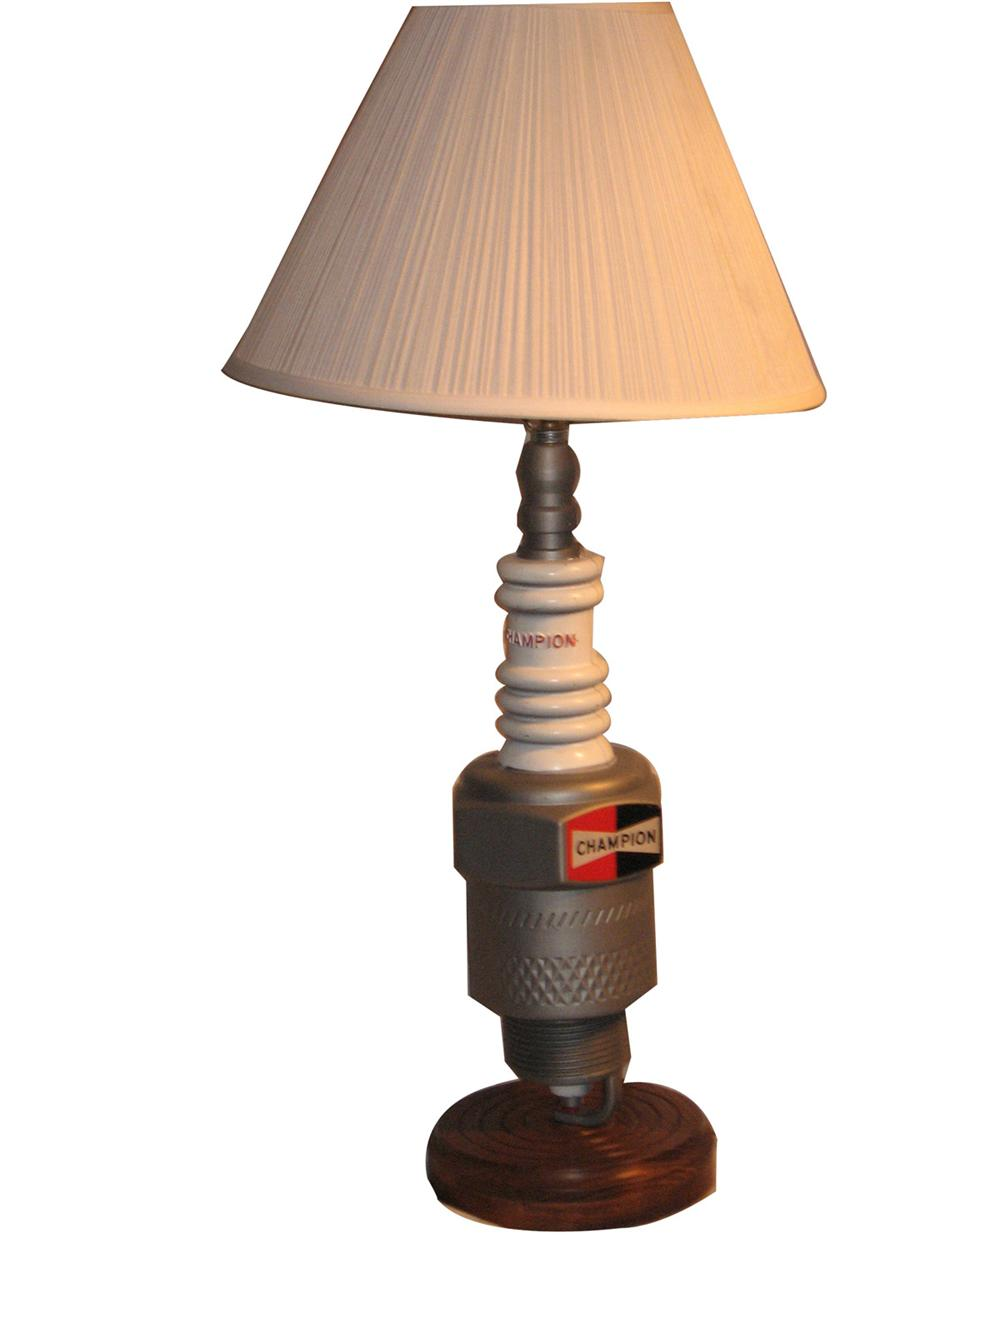 Original Champion Spark Plugs salesman's office lamp found in fabulous conditon. - Front 3/4 - 170919